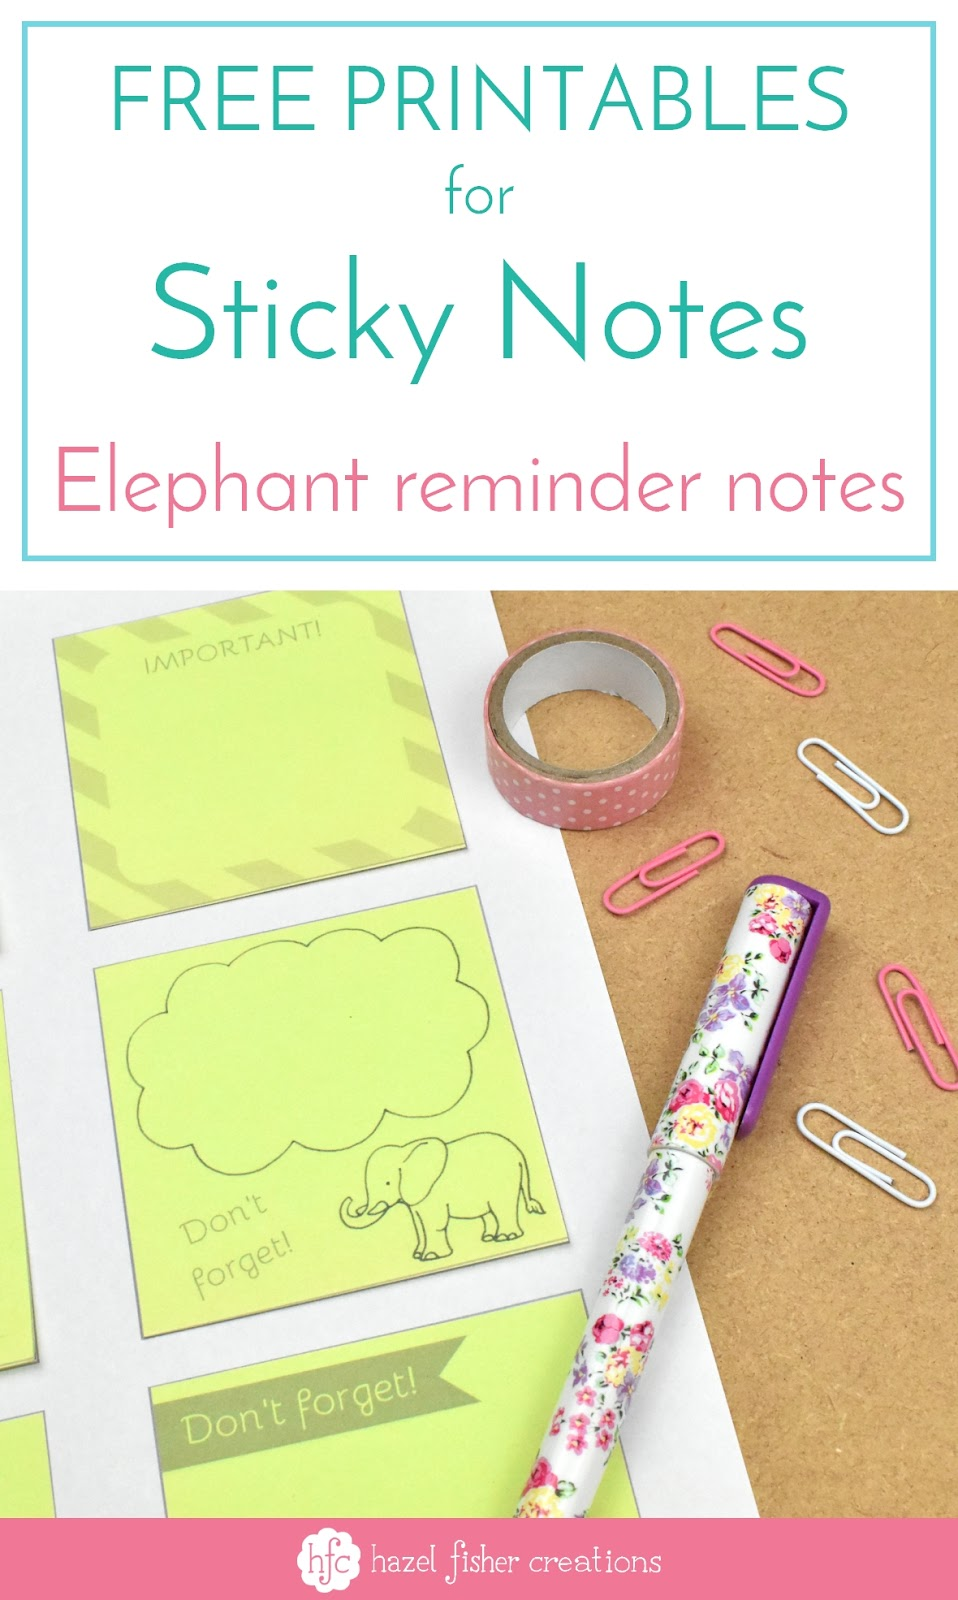 graphic about Printable Sticky Notes named Hazel Fisher Creations: Absolutely free Printables for Sticky Notes